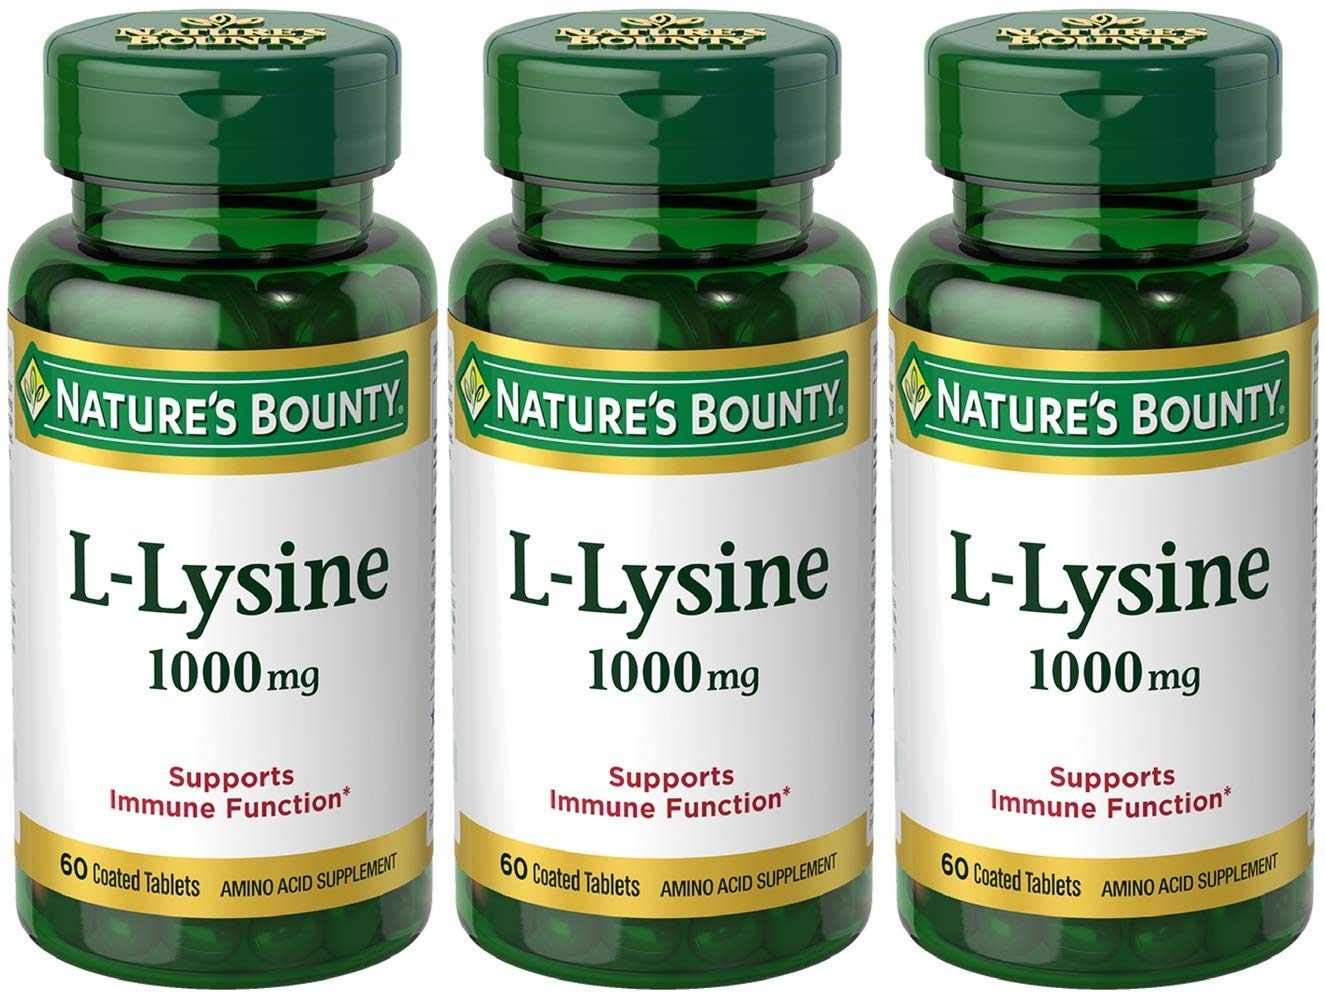 Nature s Bounty L-Lysine, 1000mg, 180 Tablets 3 x 60 Count Bottles